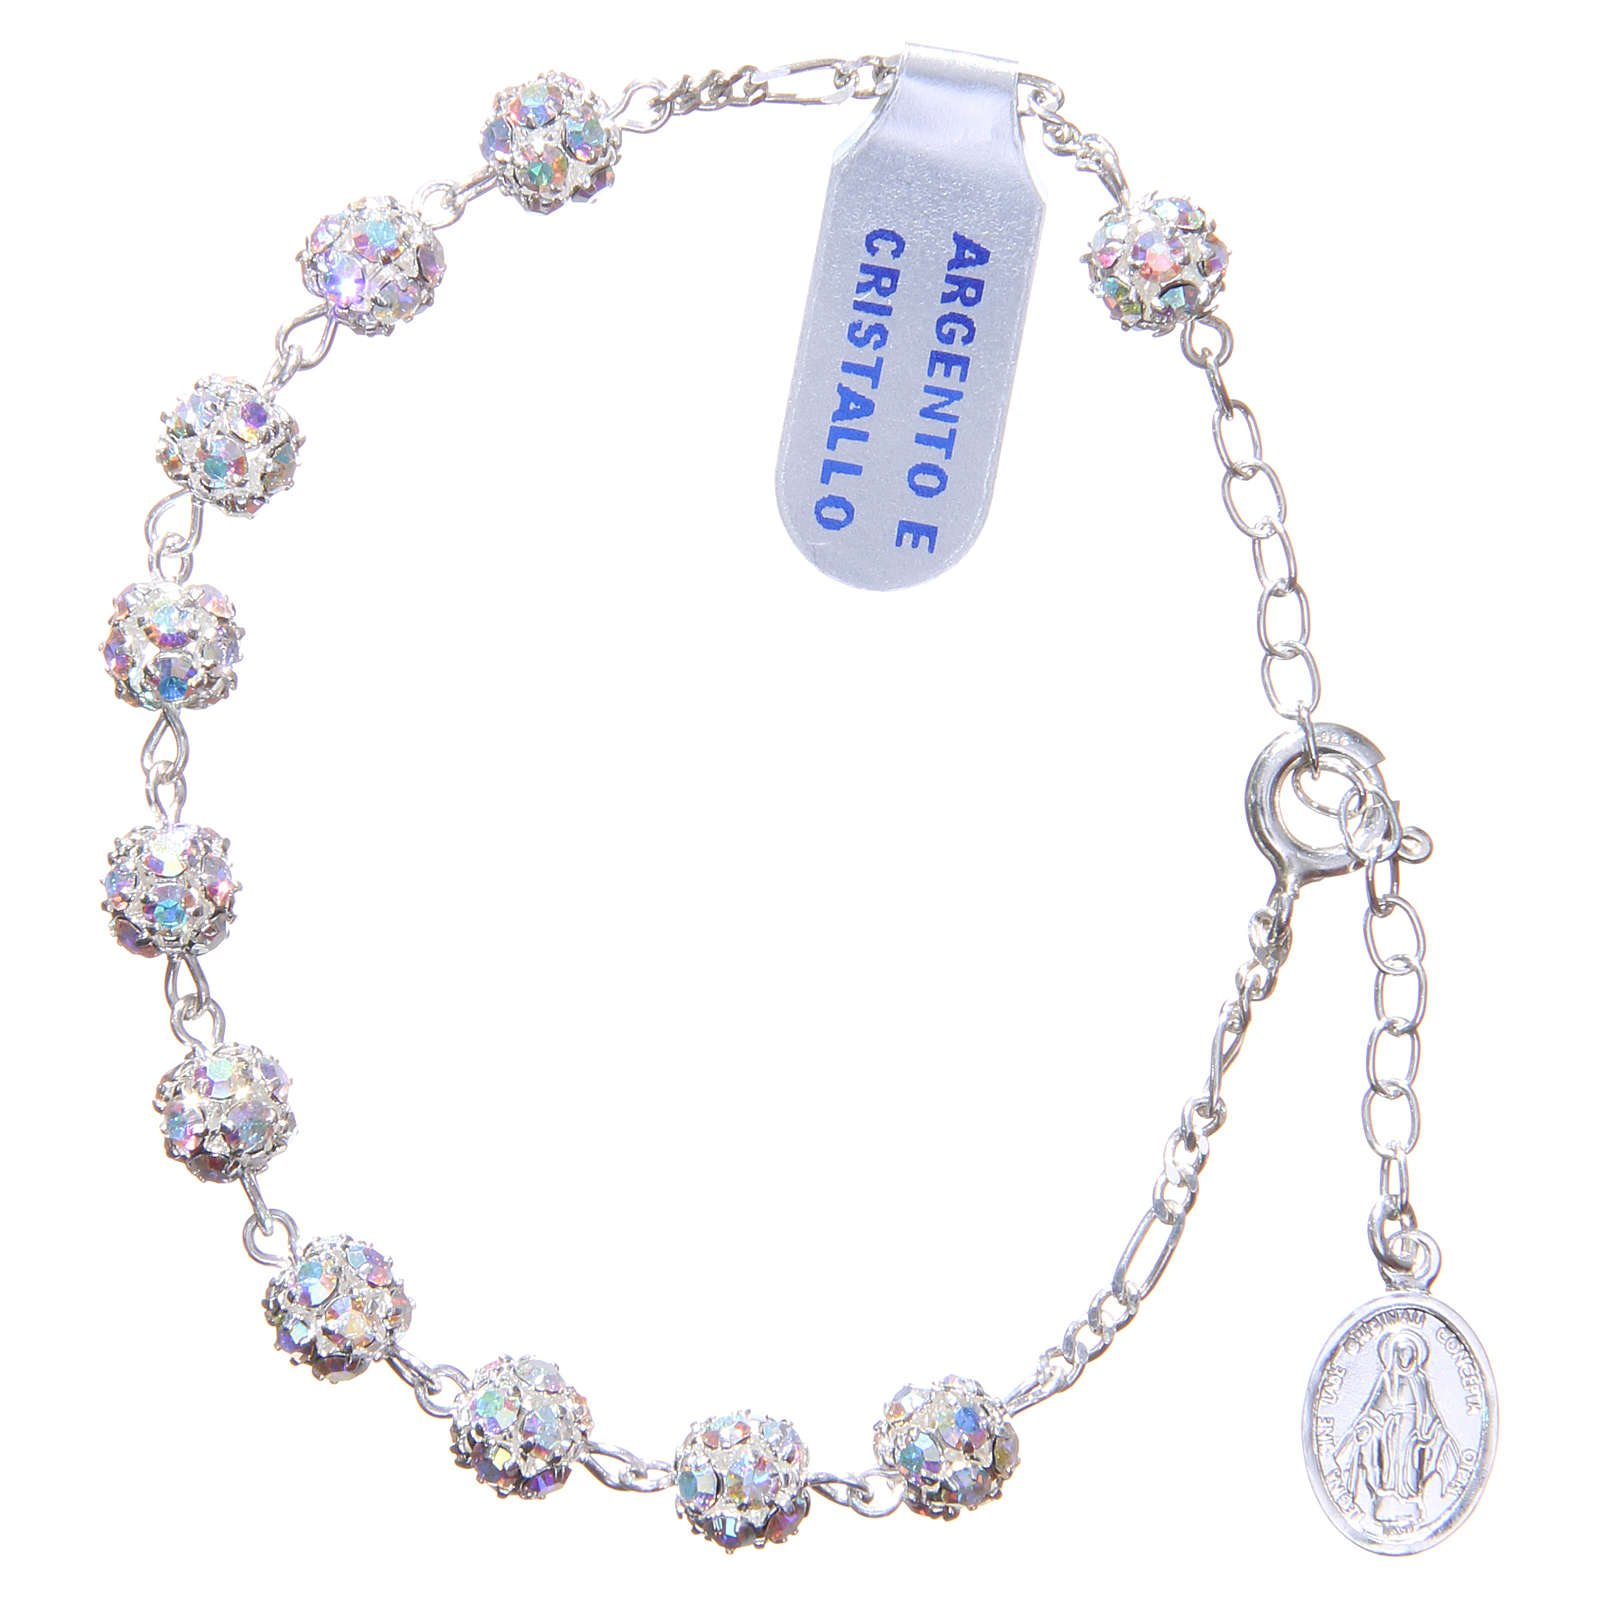 Rosary bracelet in 925 silver with white crystals 4